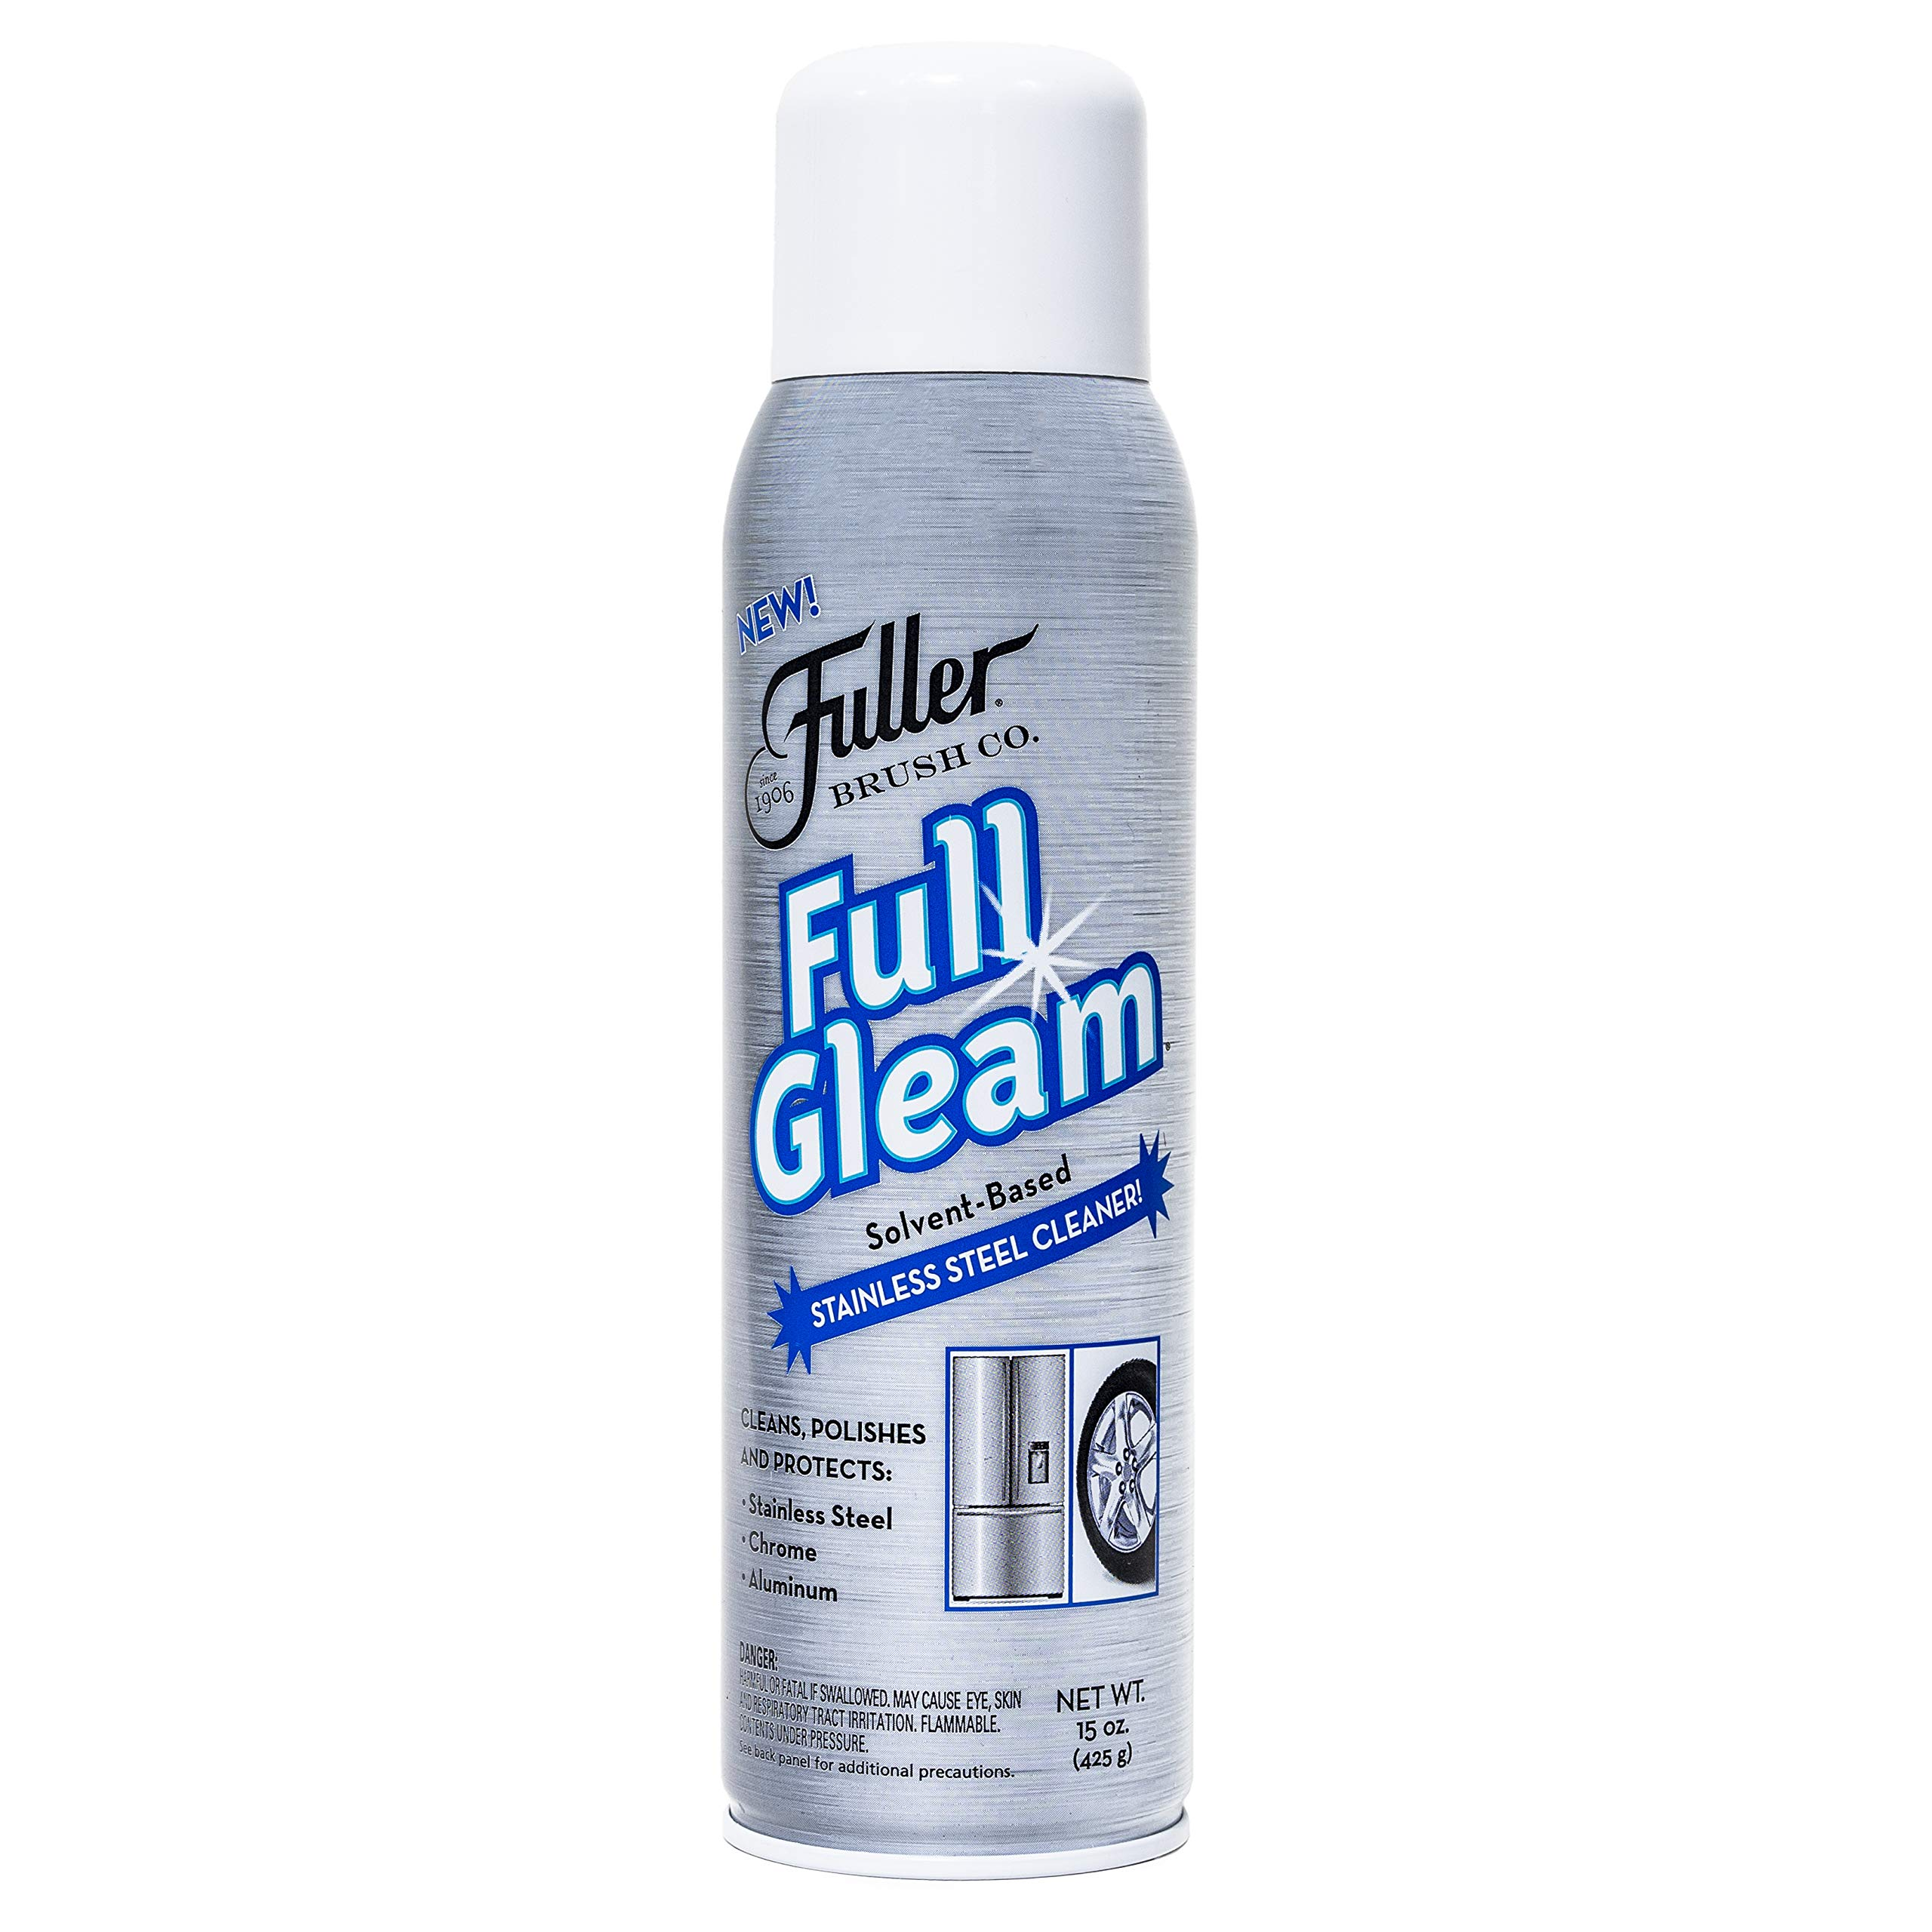 Fuller Brush Full Gleam Stainless Steel Cleaner - Chrome & Aluminum Conditioner Spray For Cleaning Pots, Pans, Cooktop & Kitchen Appliances - Easy Clean & Polish For Home & Business by Fuller Brush